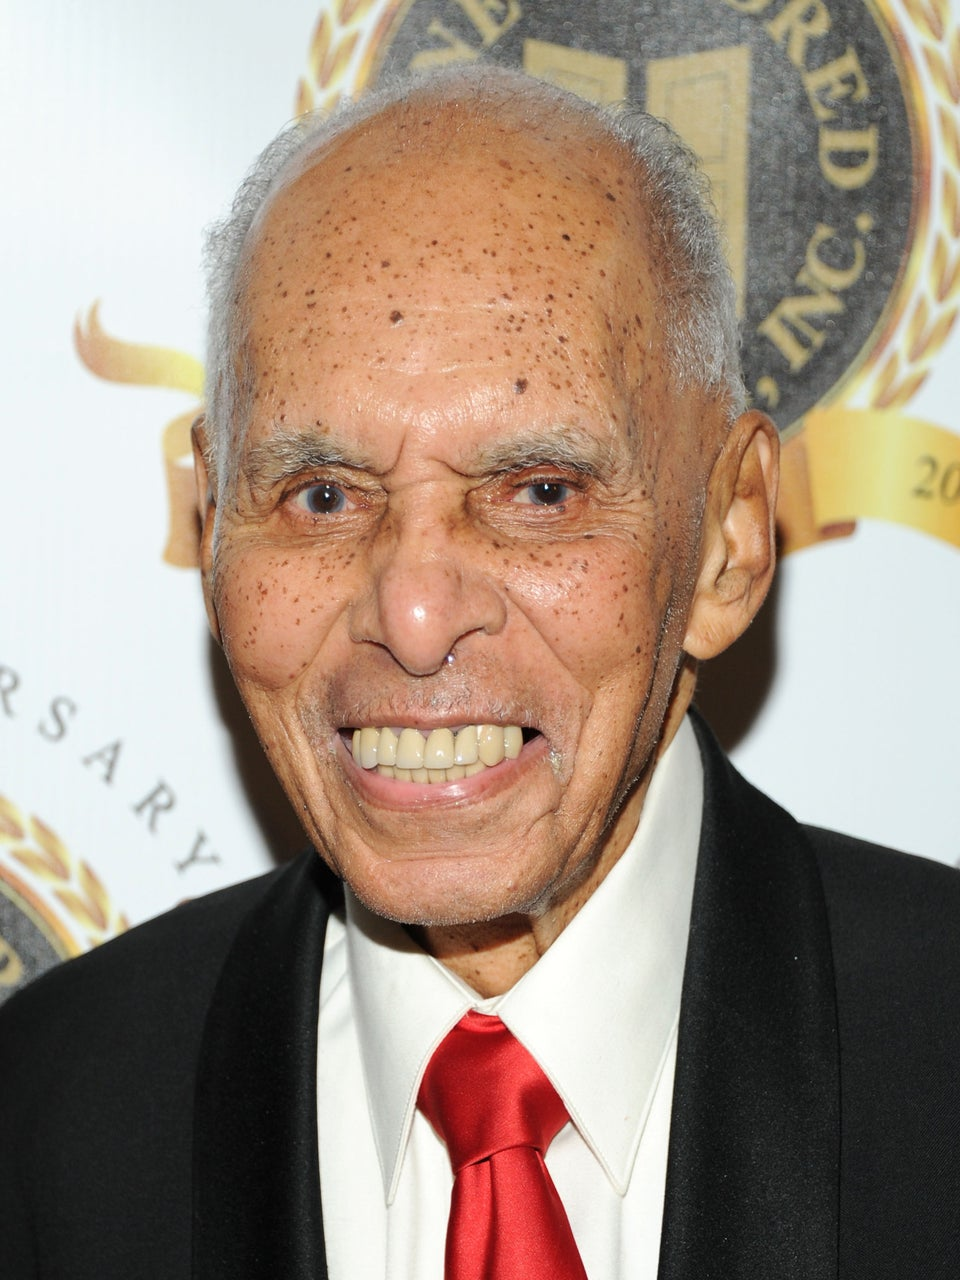 Tuskegee Airman Roscoe Brown Dies at Age 94